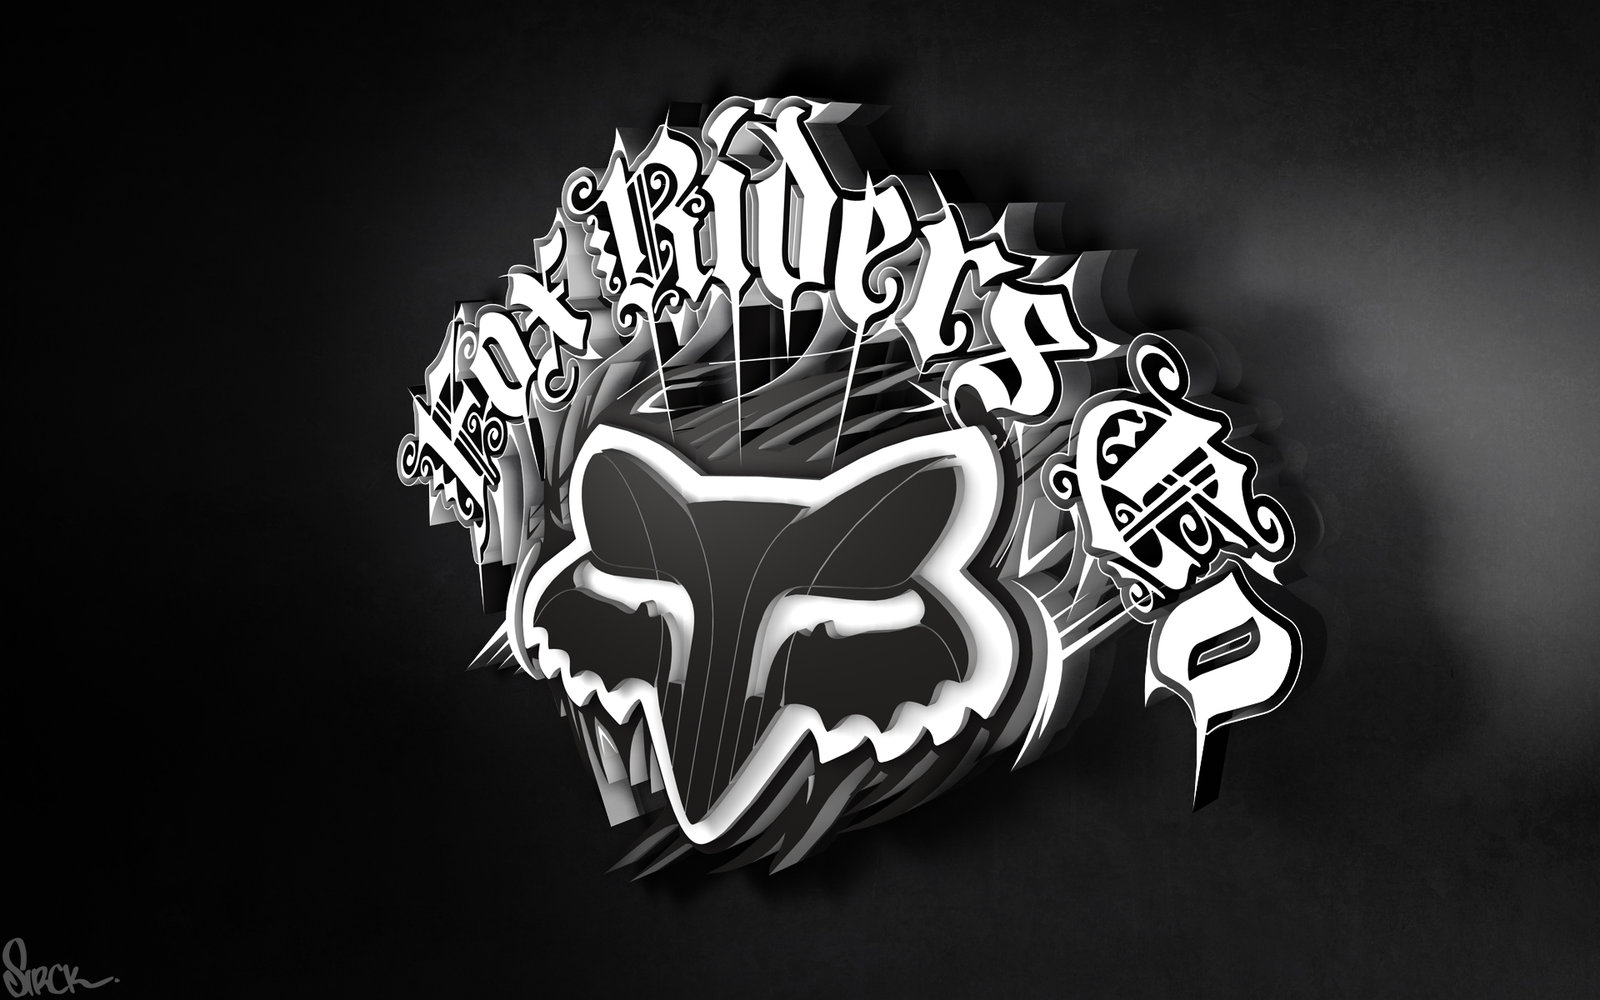 fox riders 3d logo wallpaper by small sk8er customization wallpaper 1600x1000